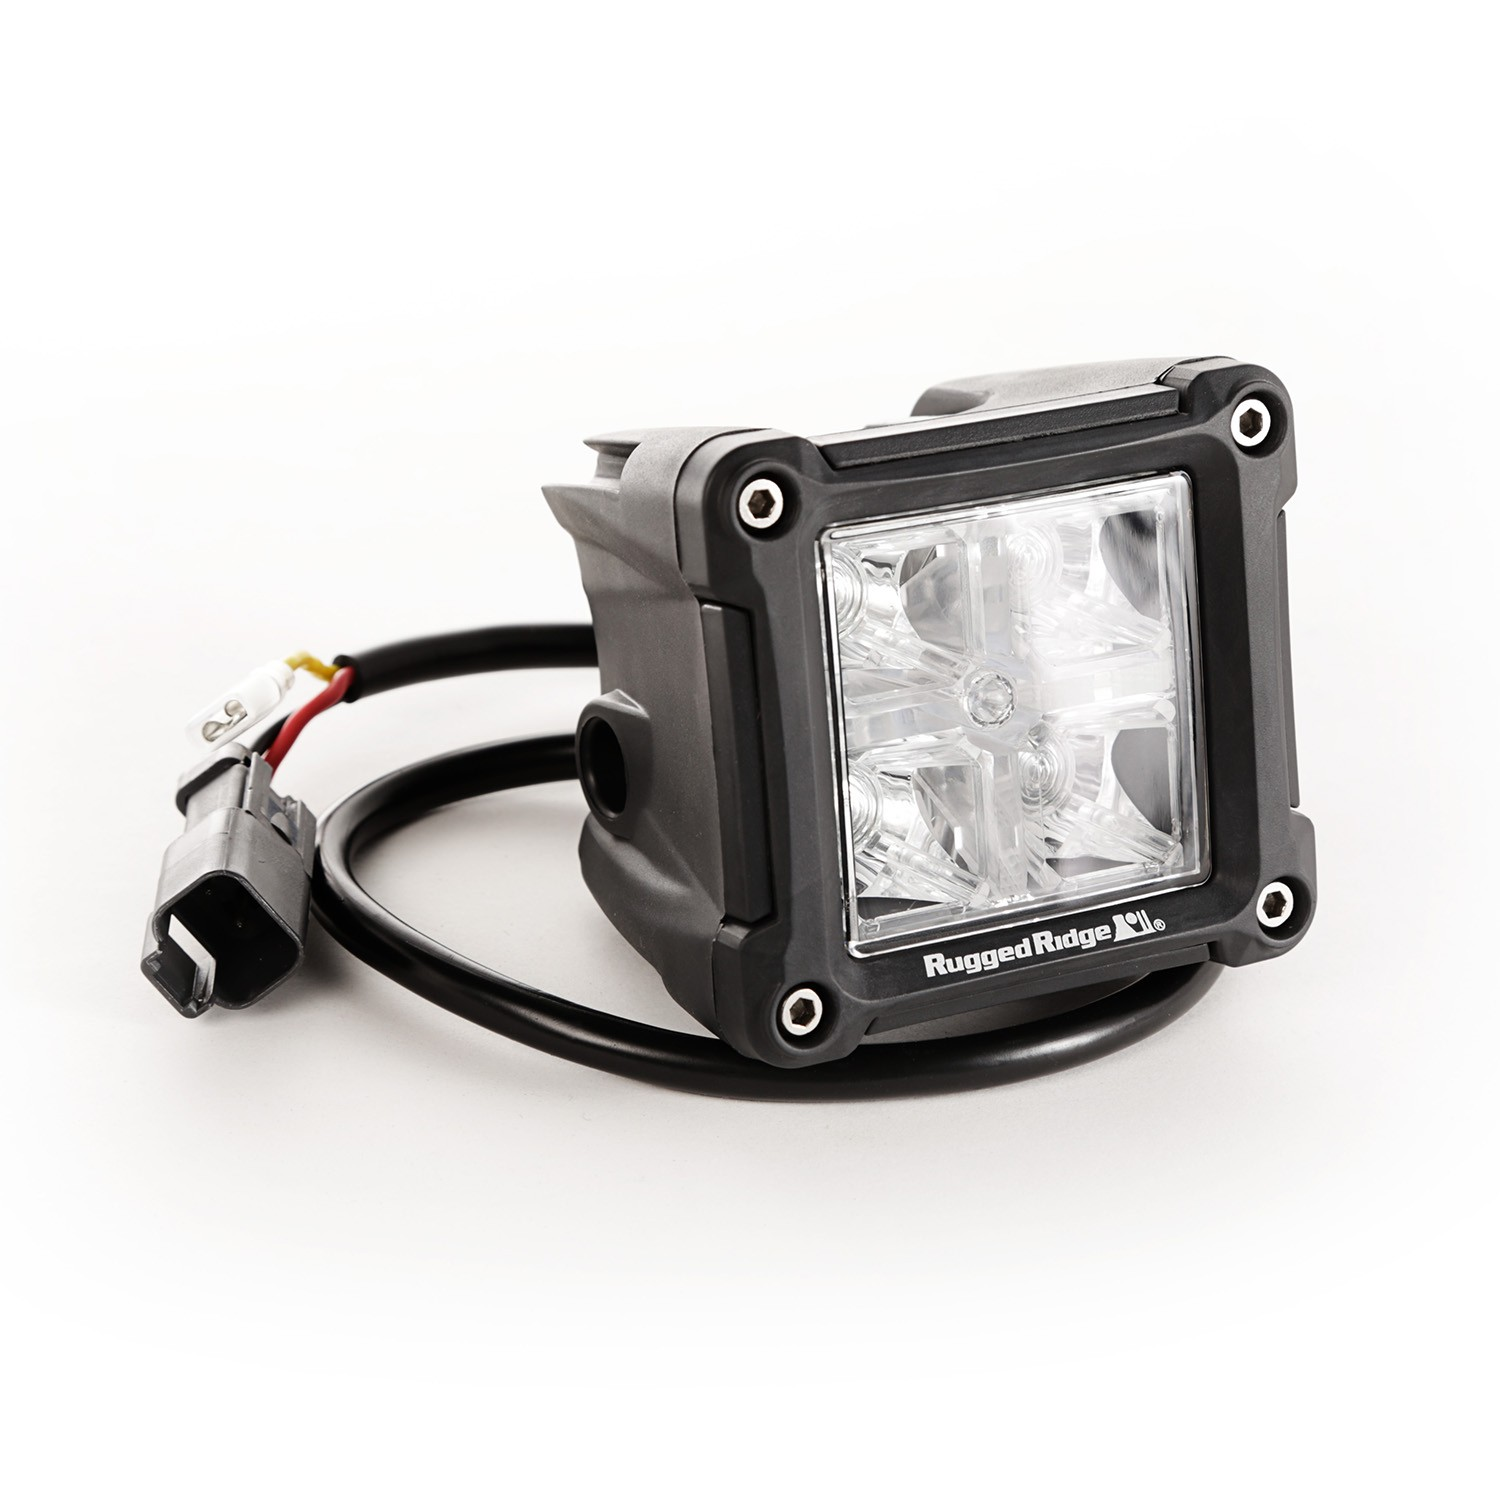 Rugged Ridge Light Kit, 3 Inch, LED, Cube, Combo High/Low Beam